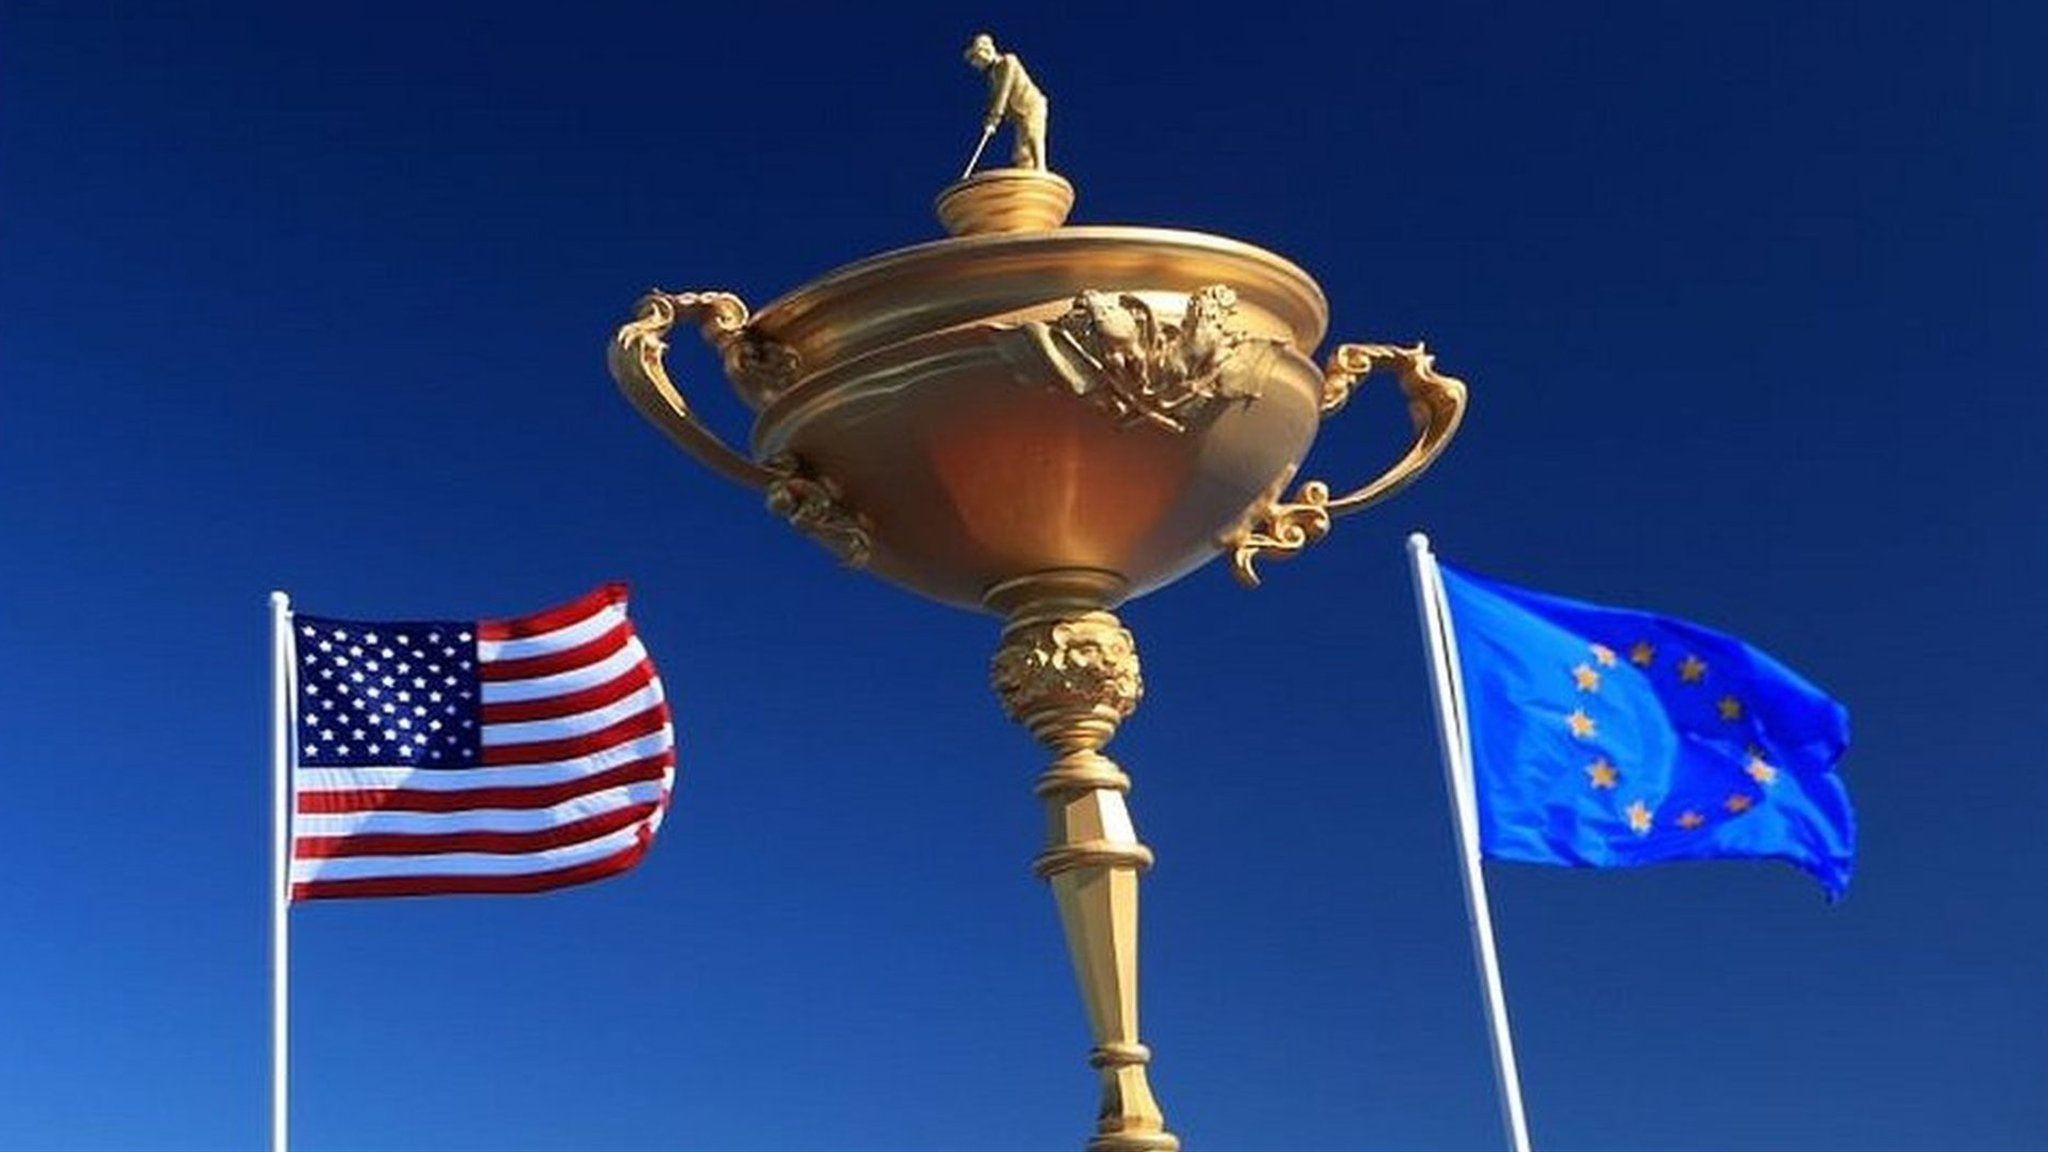 Ryder Cup 2018: Who will qualify for Europe and United States' teams?